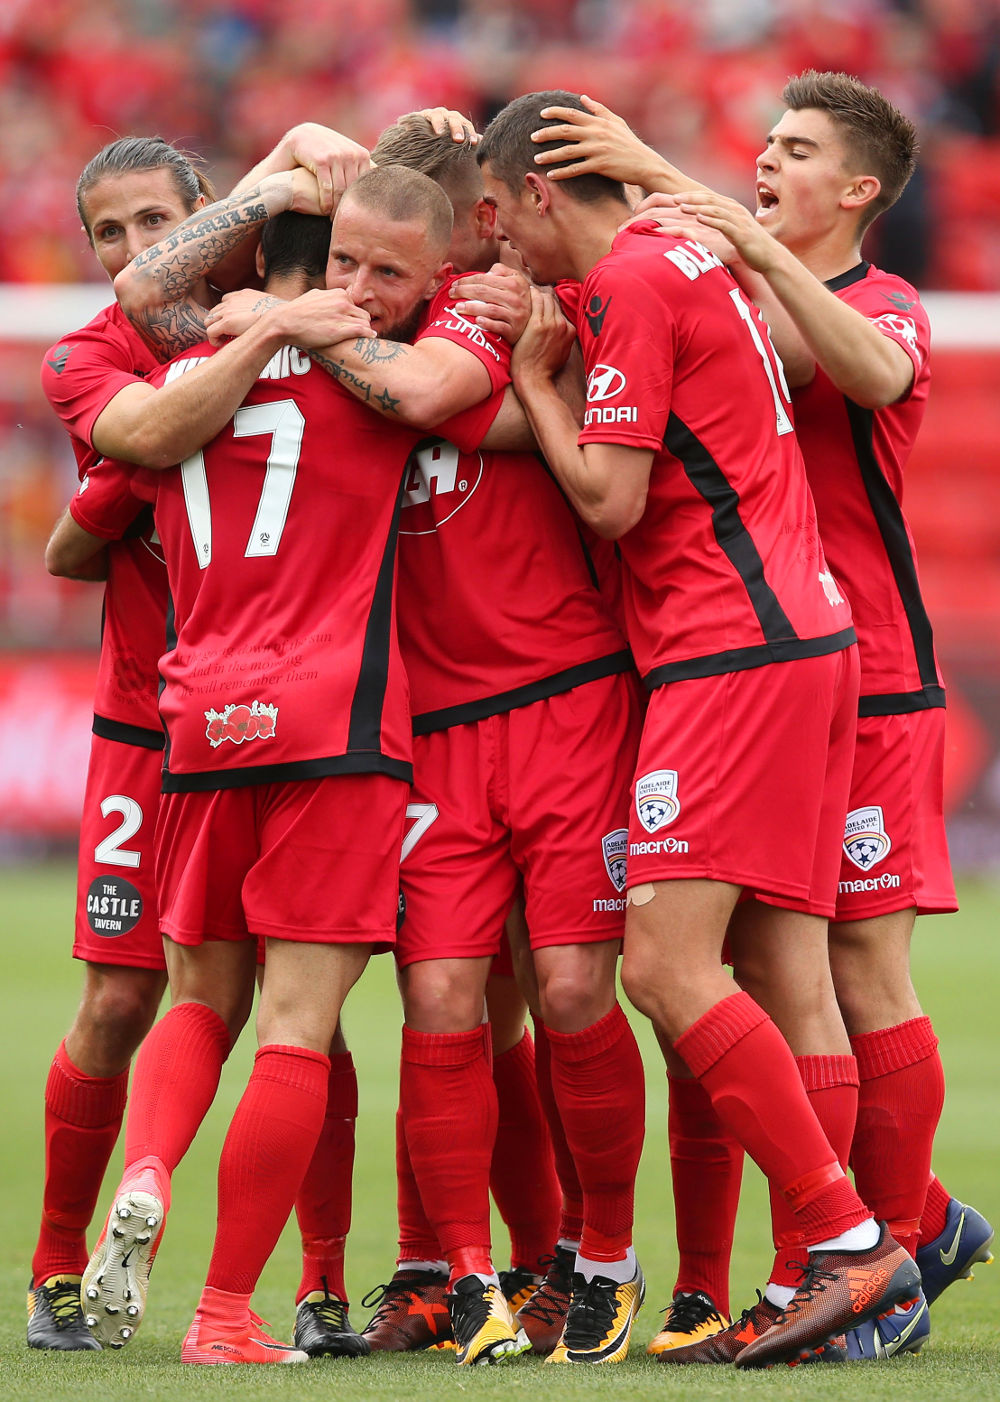 Adelaide United tall